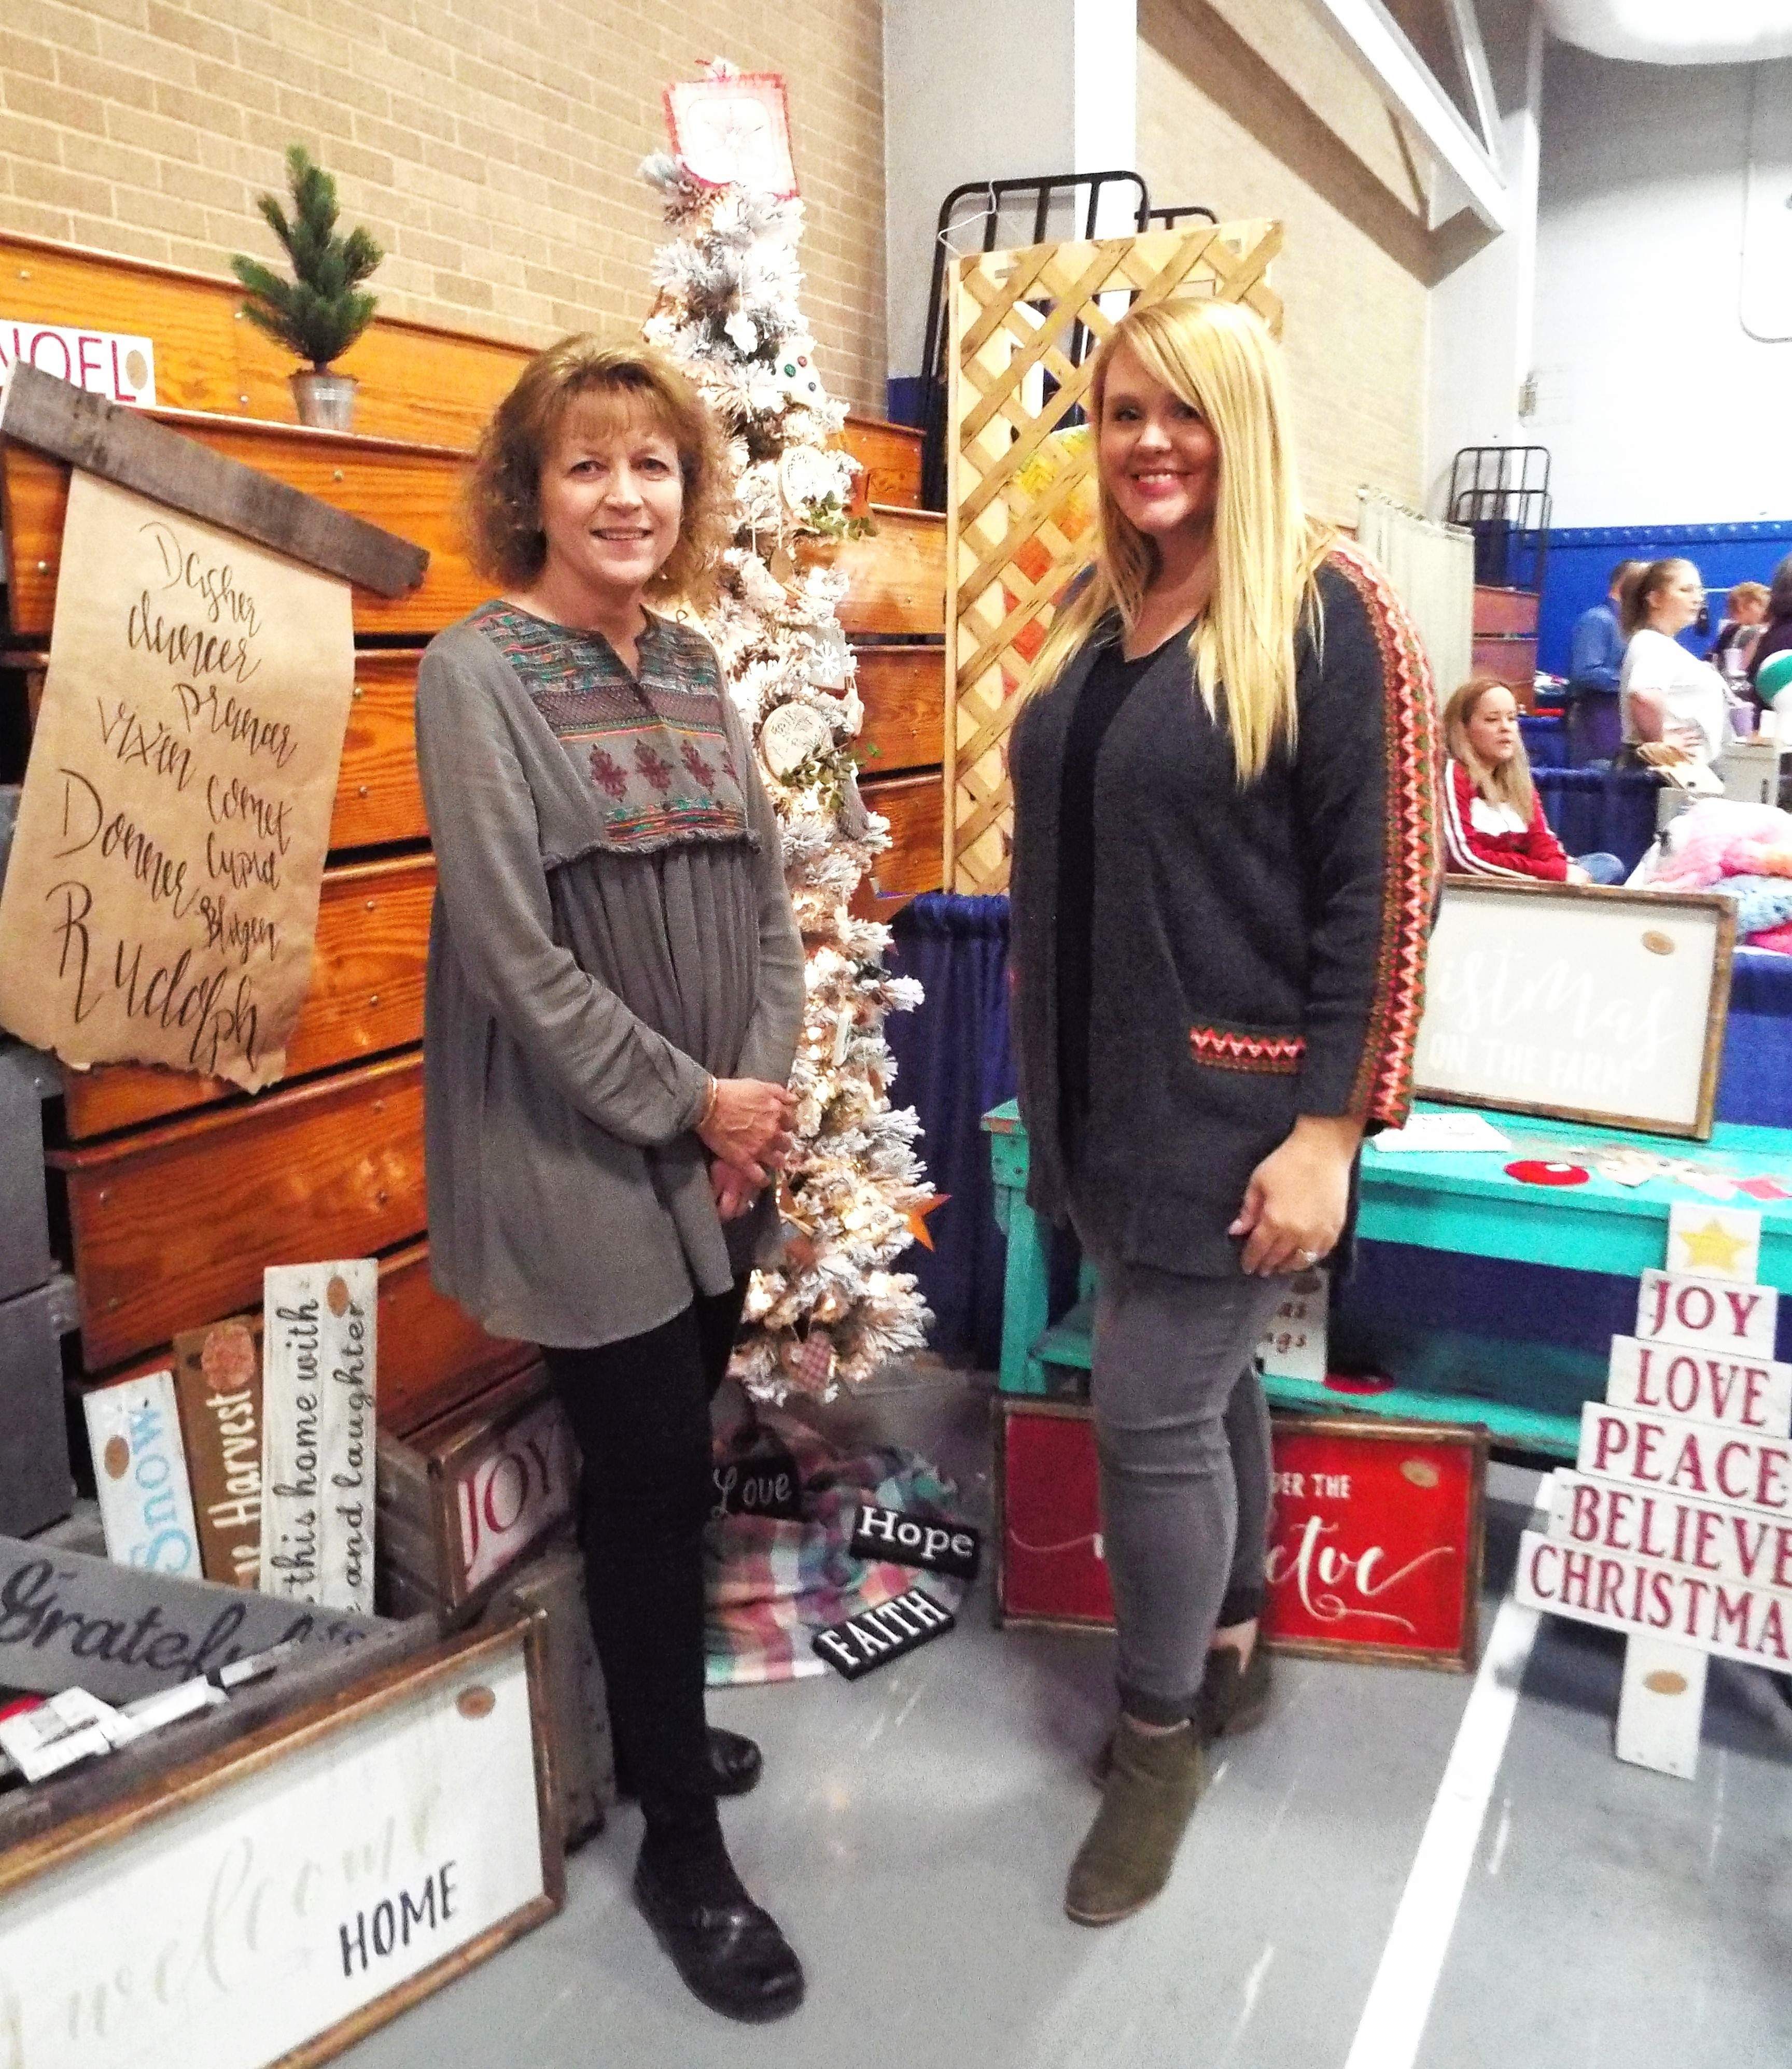 Teresa, left, and Amanda Pauls stand ready for shoppers at John A. Logan's annual arts and crafts extravaganza.